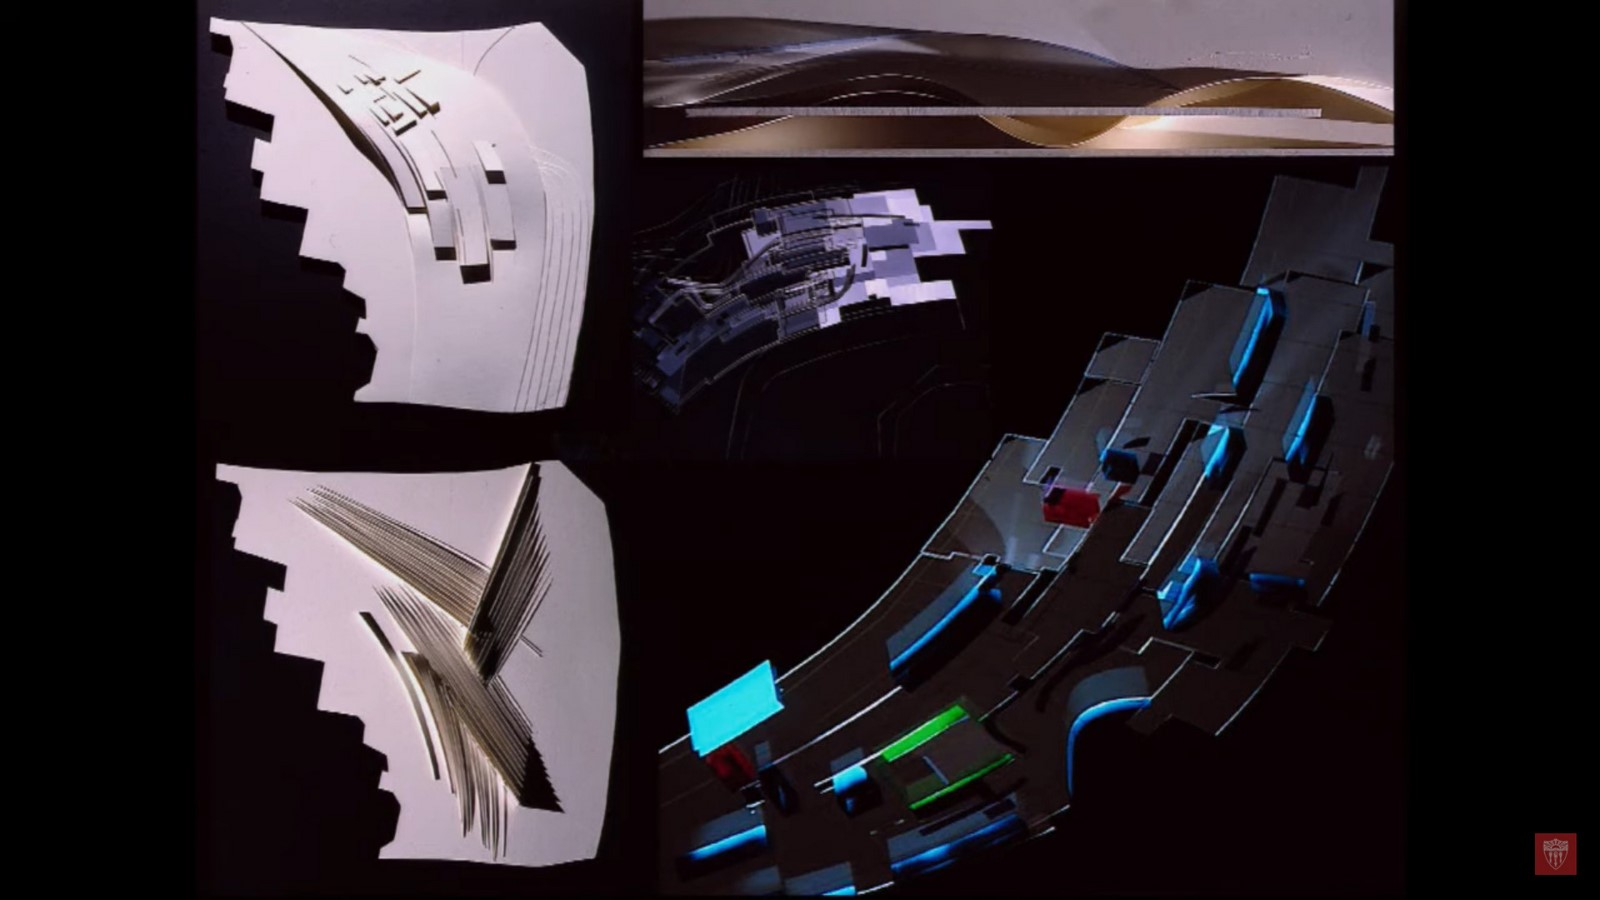 Interviews with Architects: Visions and Voices: An Evening with Zaha Hadid - Sheet6